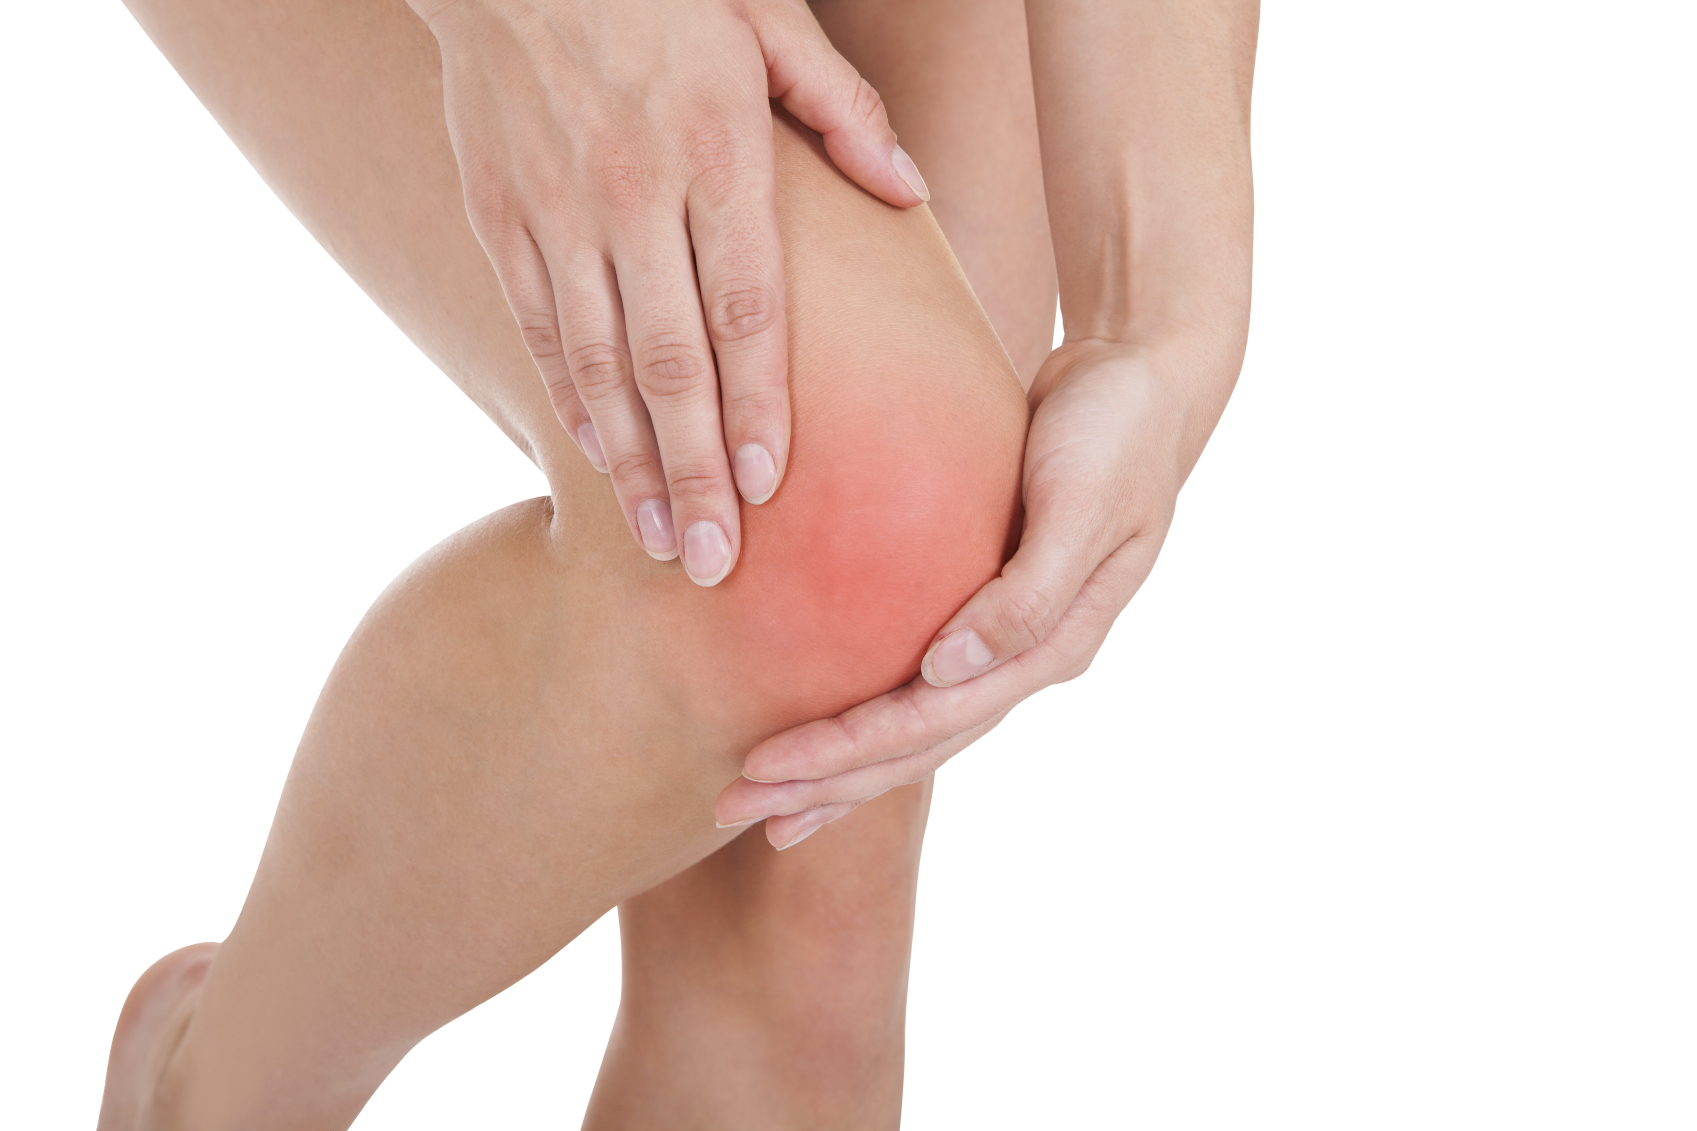 Anti-inflammatories and pain relievers won't fix your knee pain. Plus they come with major side effects. Here are five natural alternatives for saving your knees.